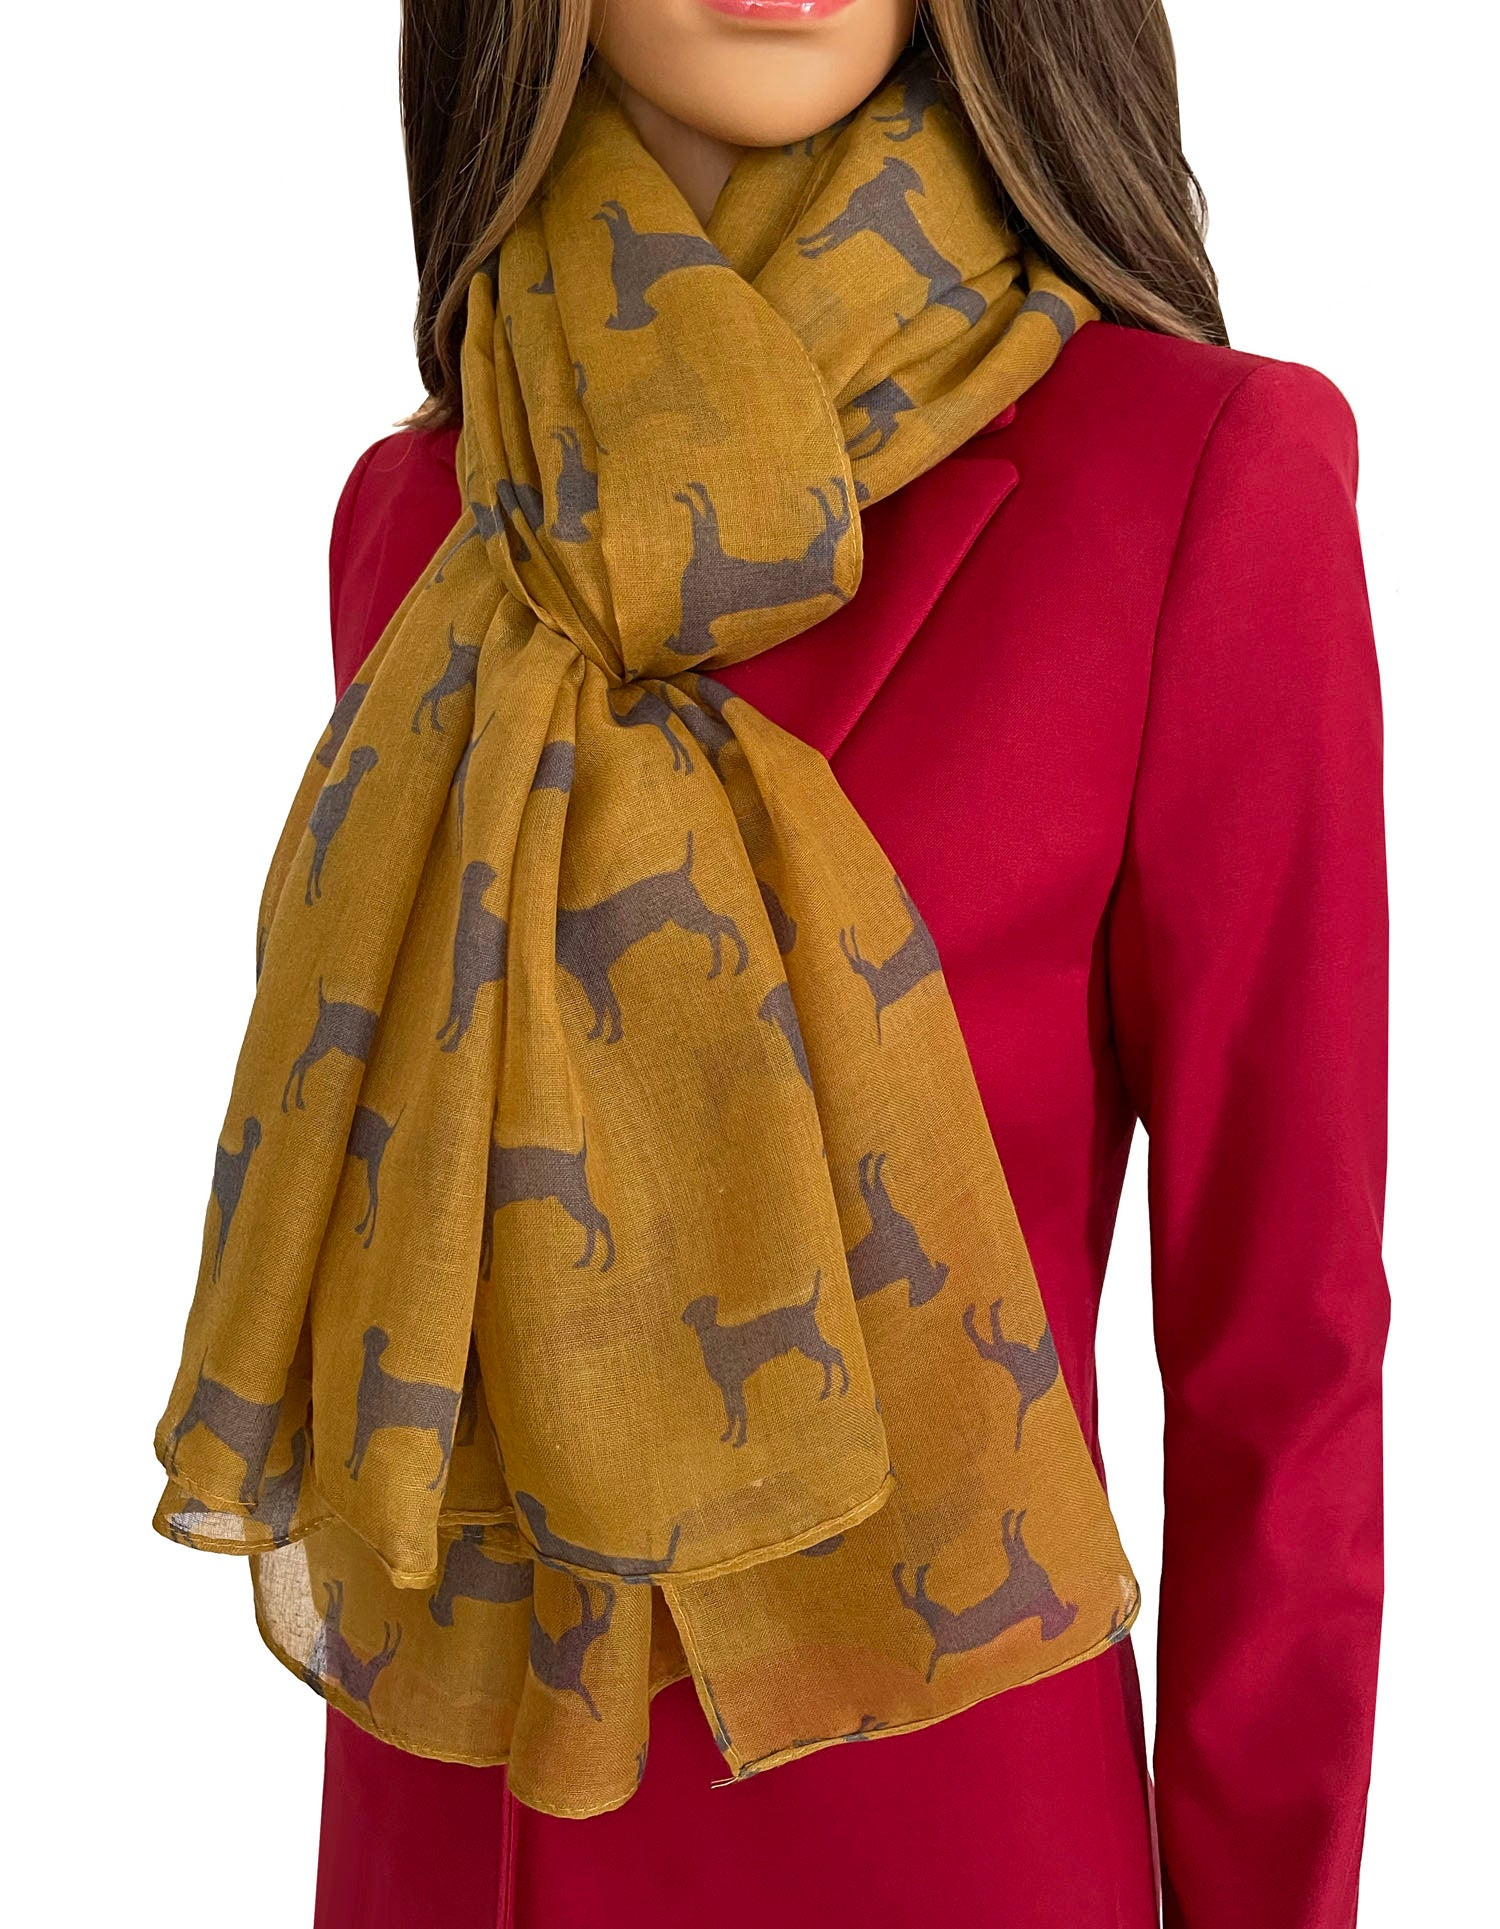 LIGHTWEIGHT MUSTARD YELLOW DOG PRINT SHEER NECK SCARF